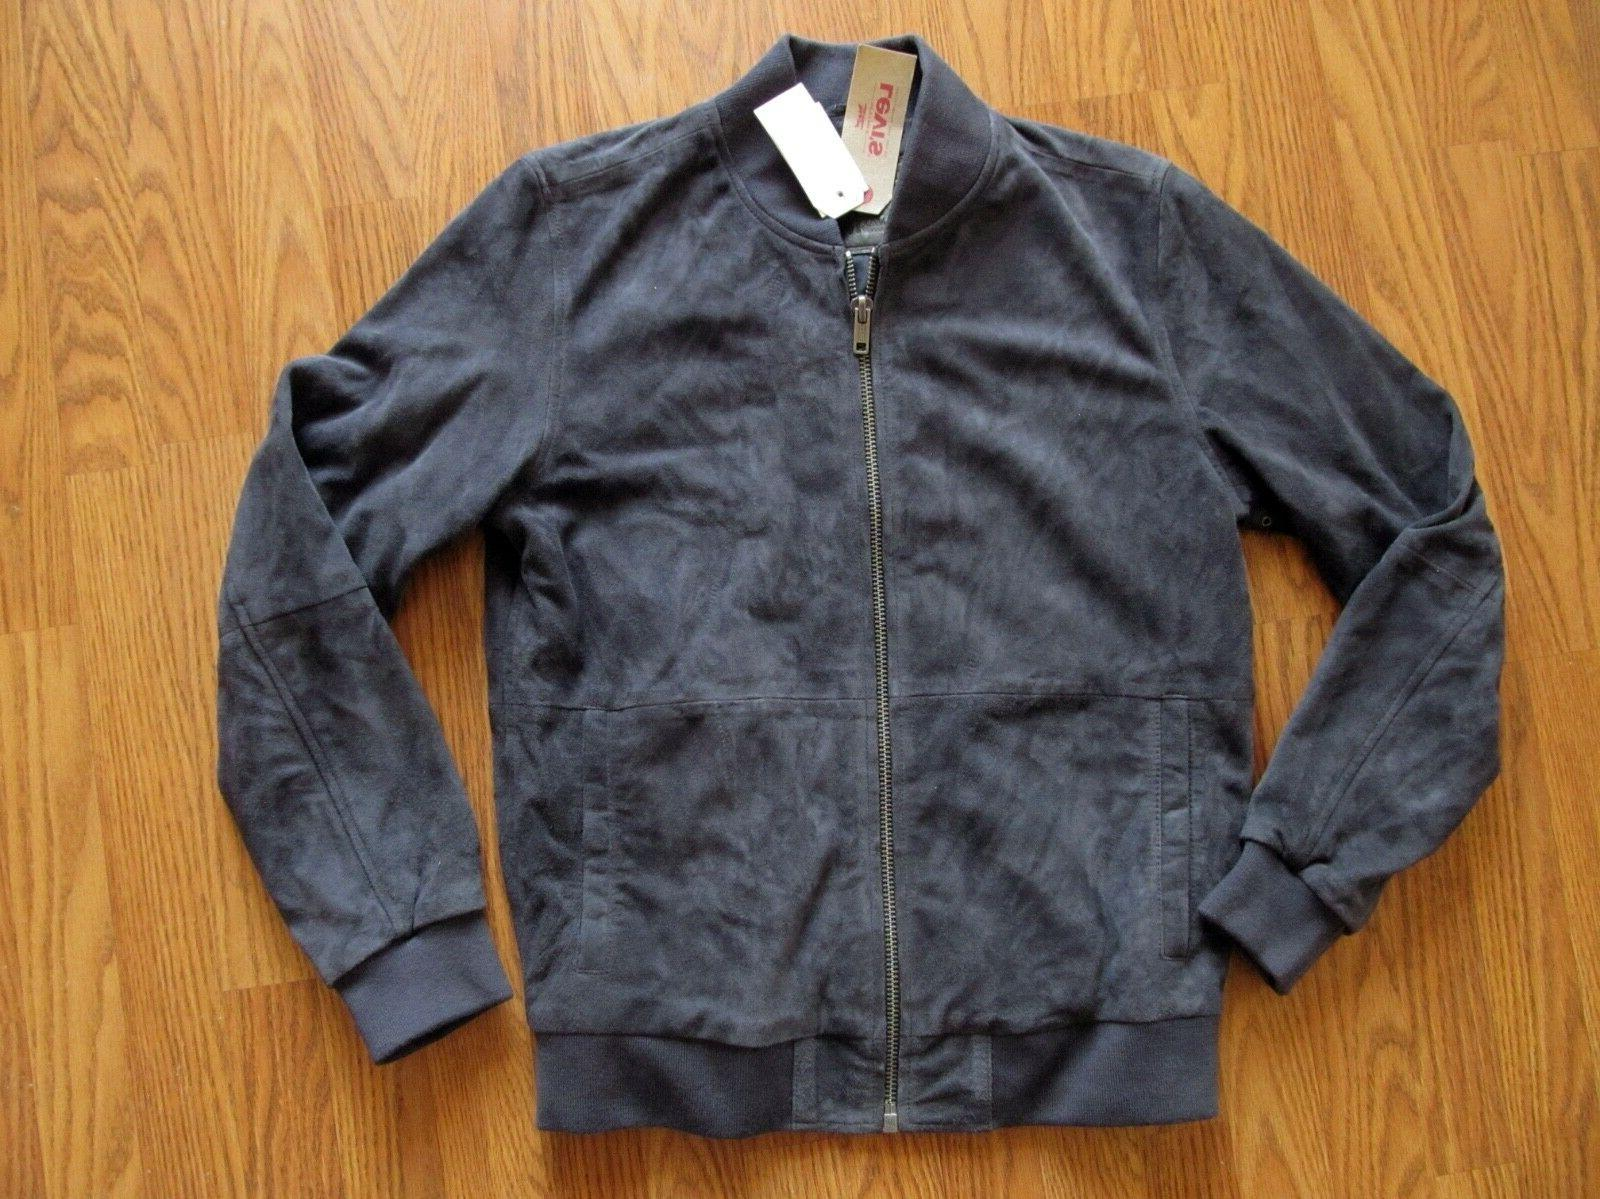 Levi's | SUEDE BOMBER JACKET Men's size Small - navy $428